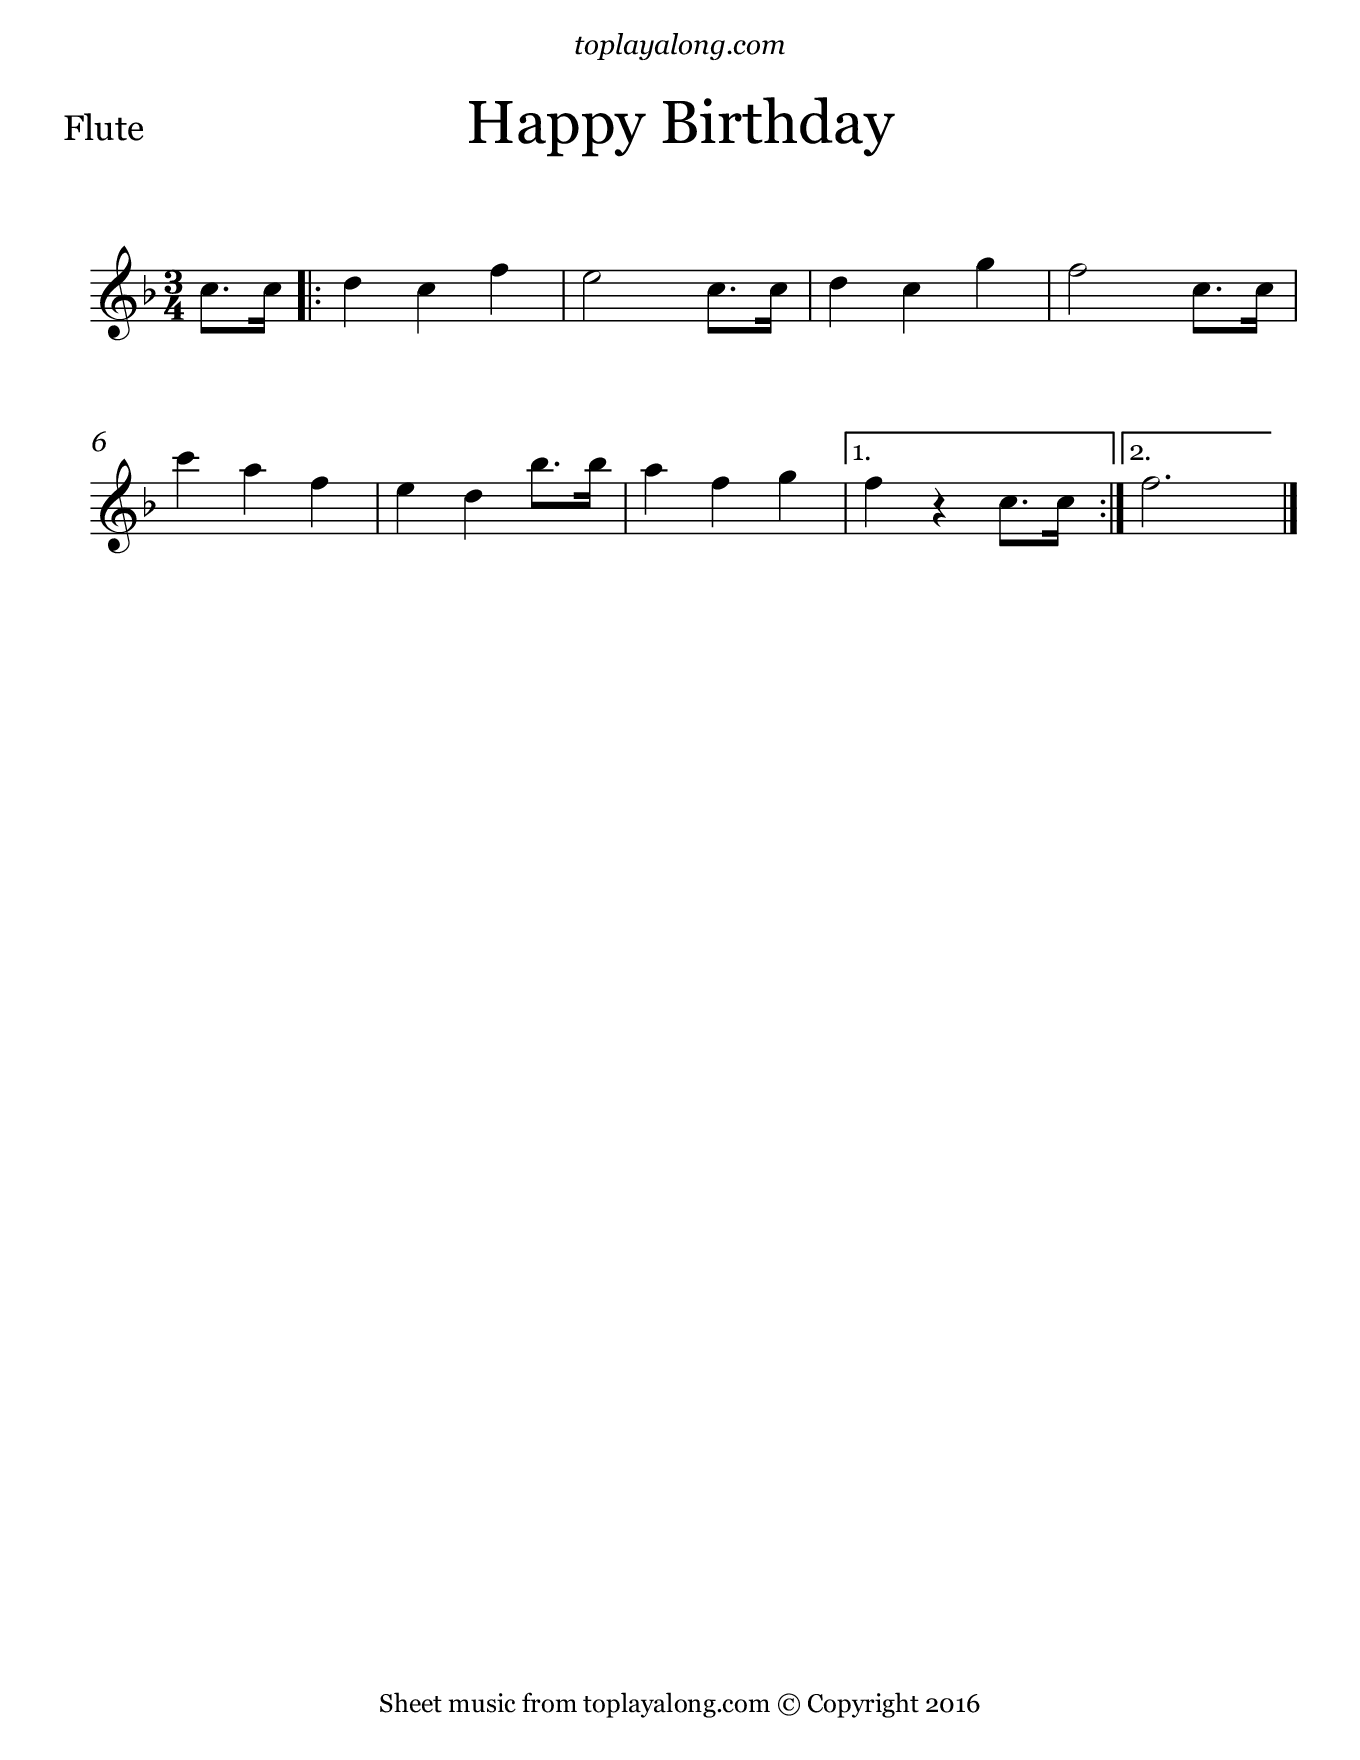 Happy Birthday. Sheet music for Flute, page 1.